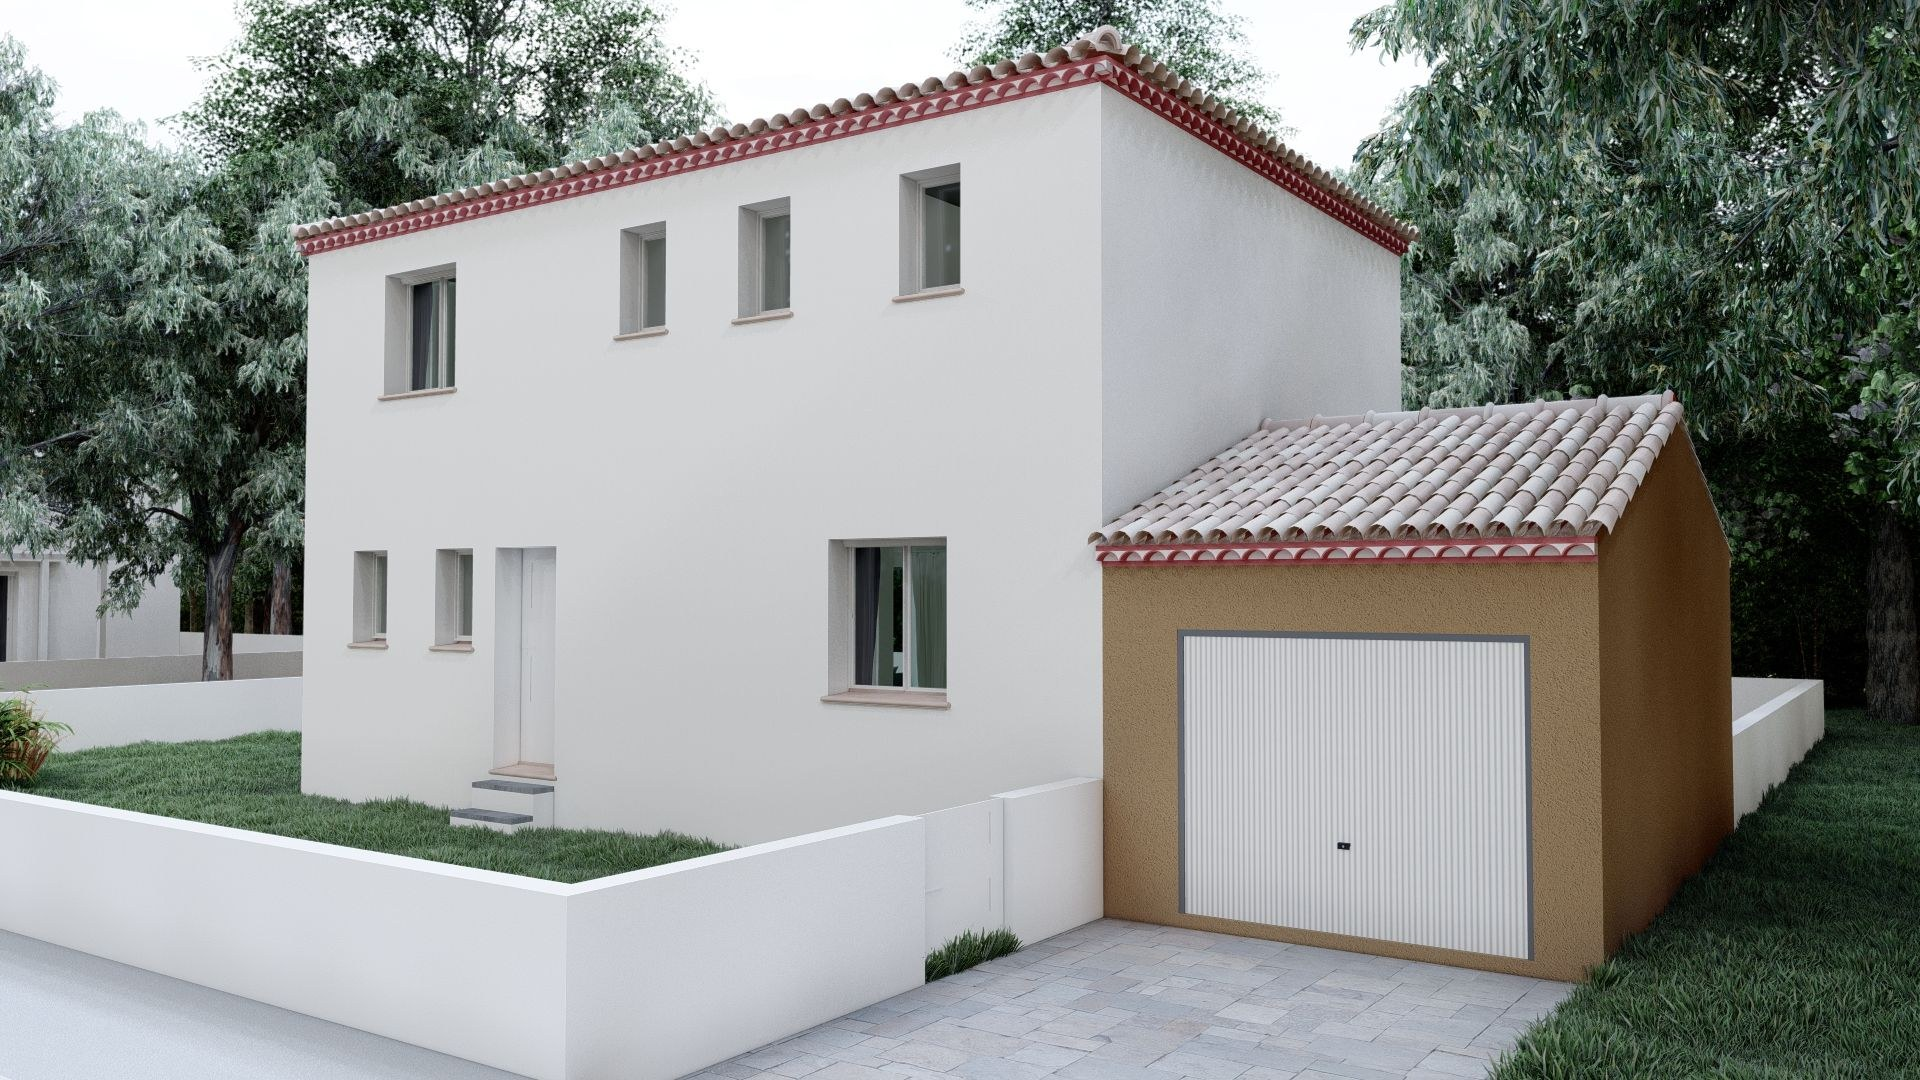 13- Bastide traditionnelle 110 m²